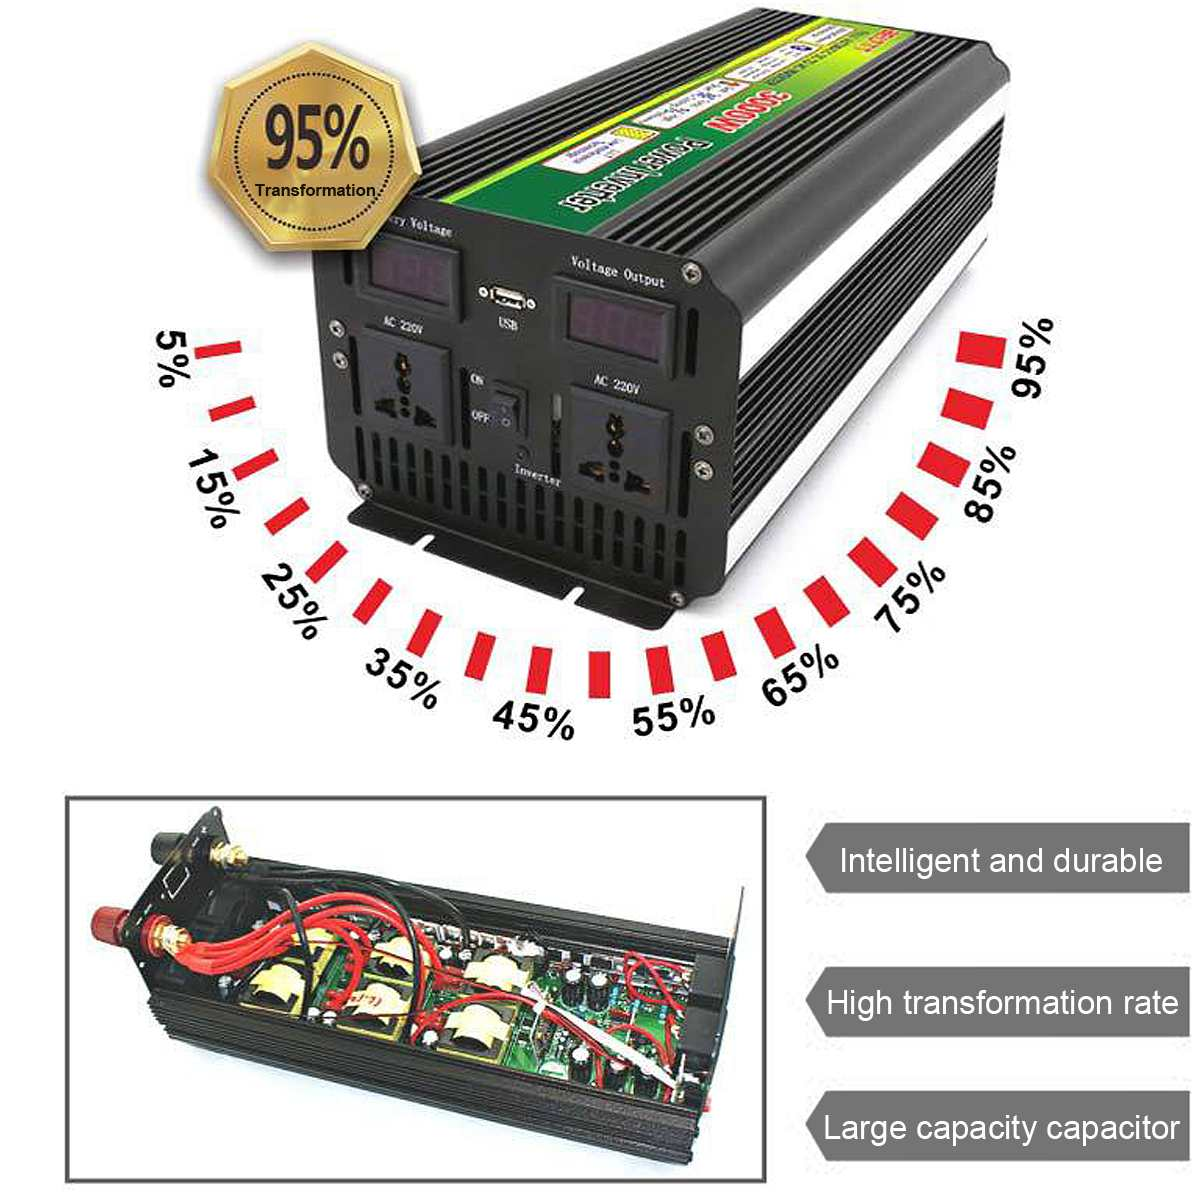 Hot Sale 3000W 6000W Max DC 12V 24V to 220V Power Inverter for Solar/Wind with LCD Digital Display